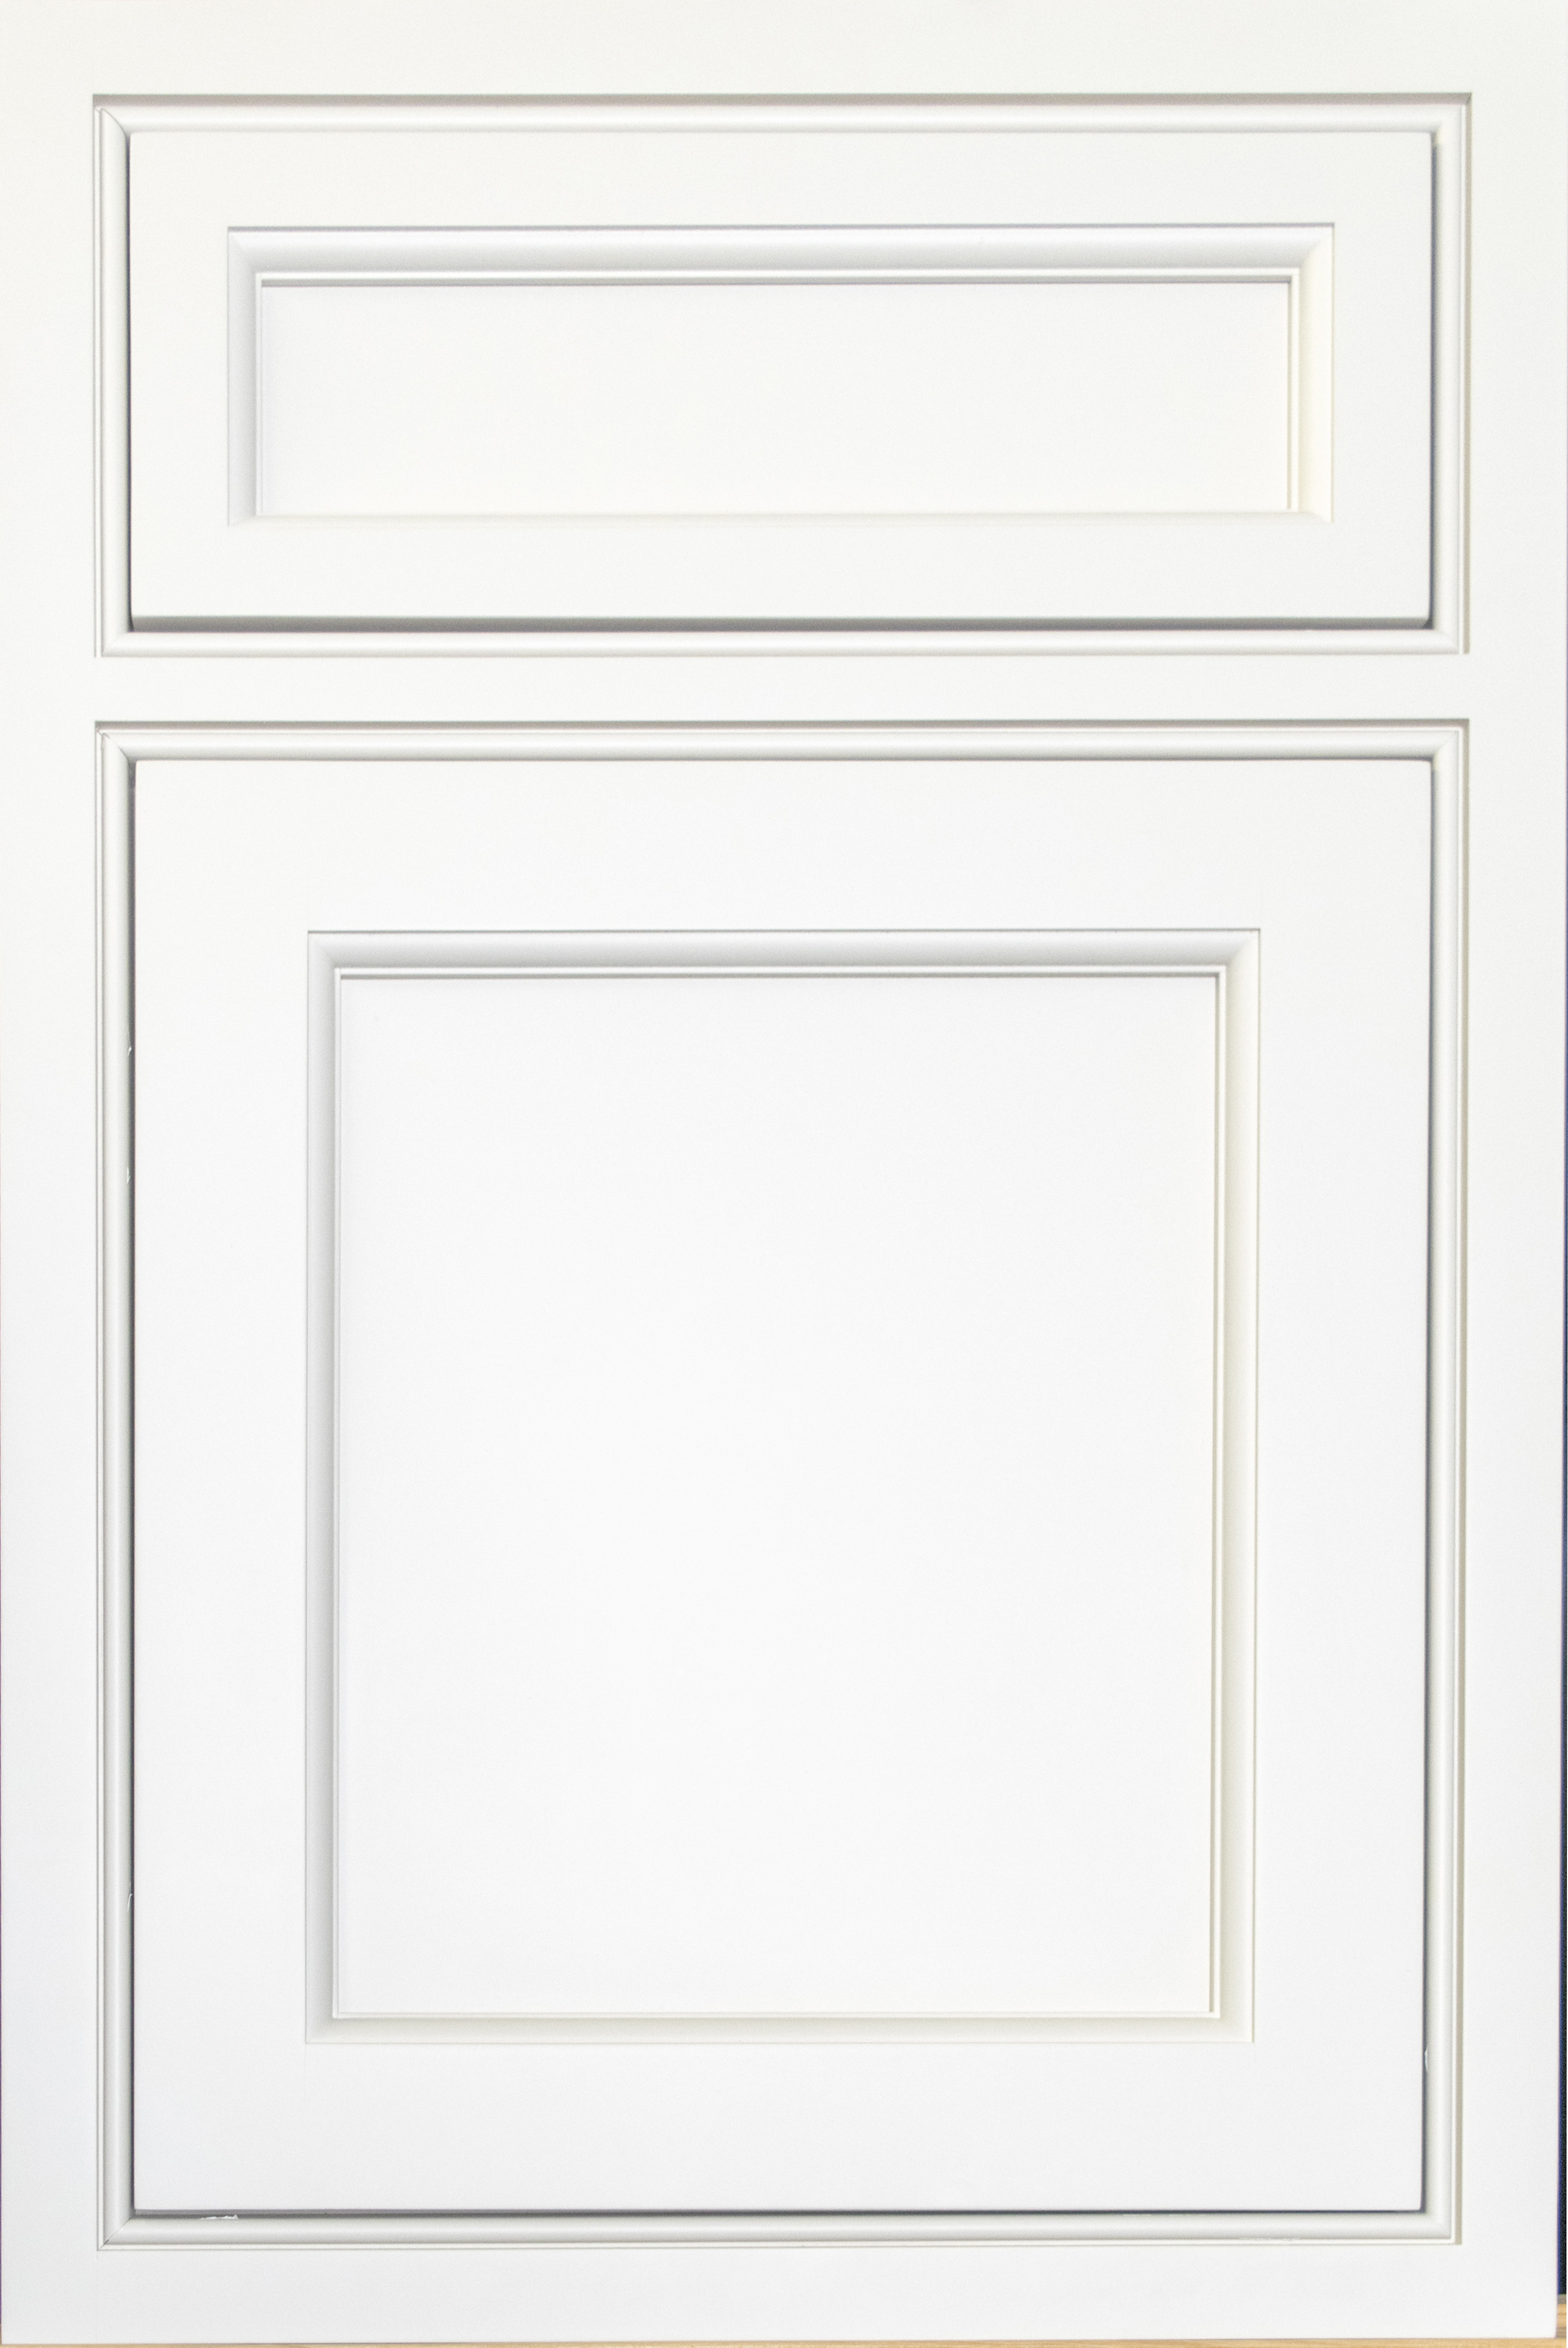 Interior Craft Maid craft maid handmade cabinetry door styles cabinet finish style